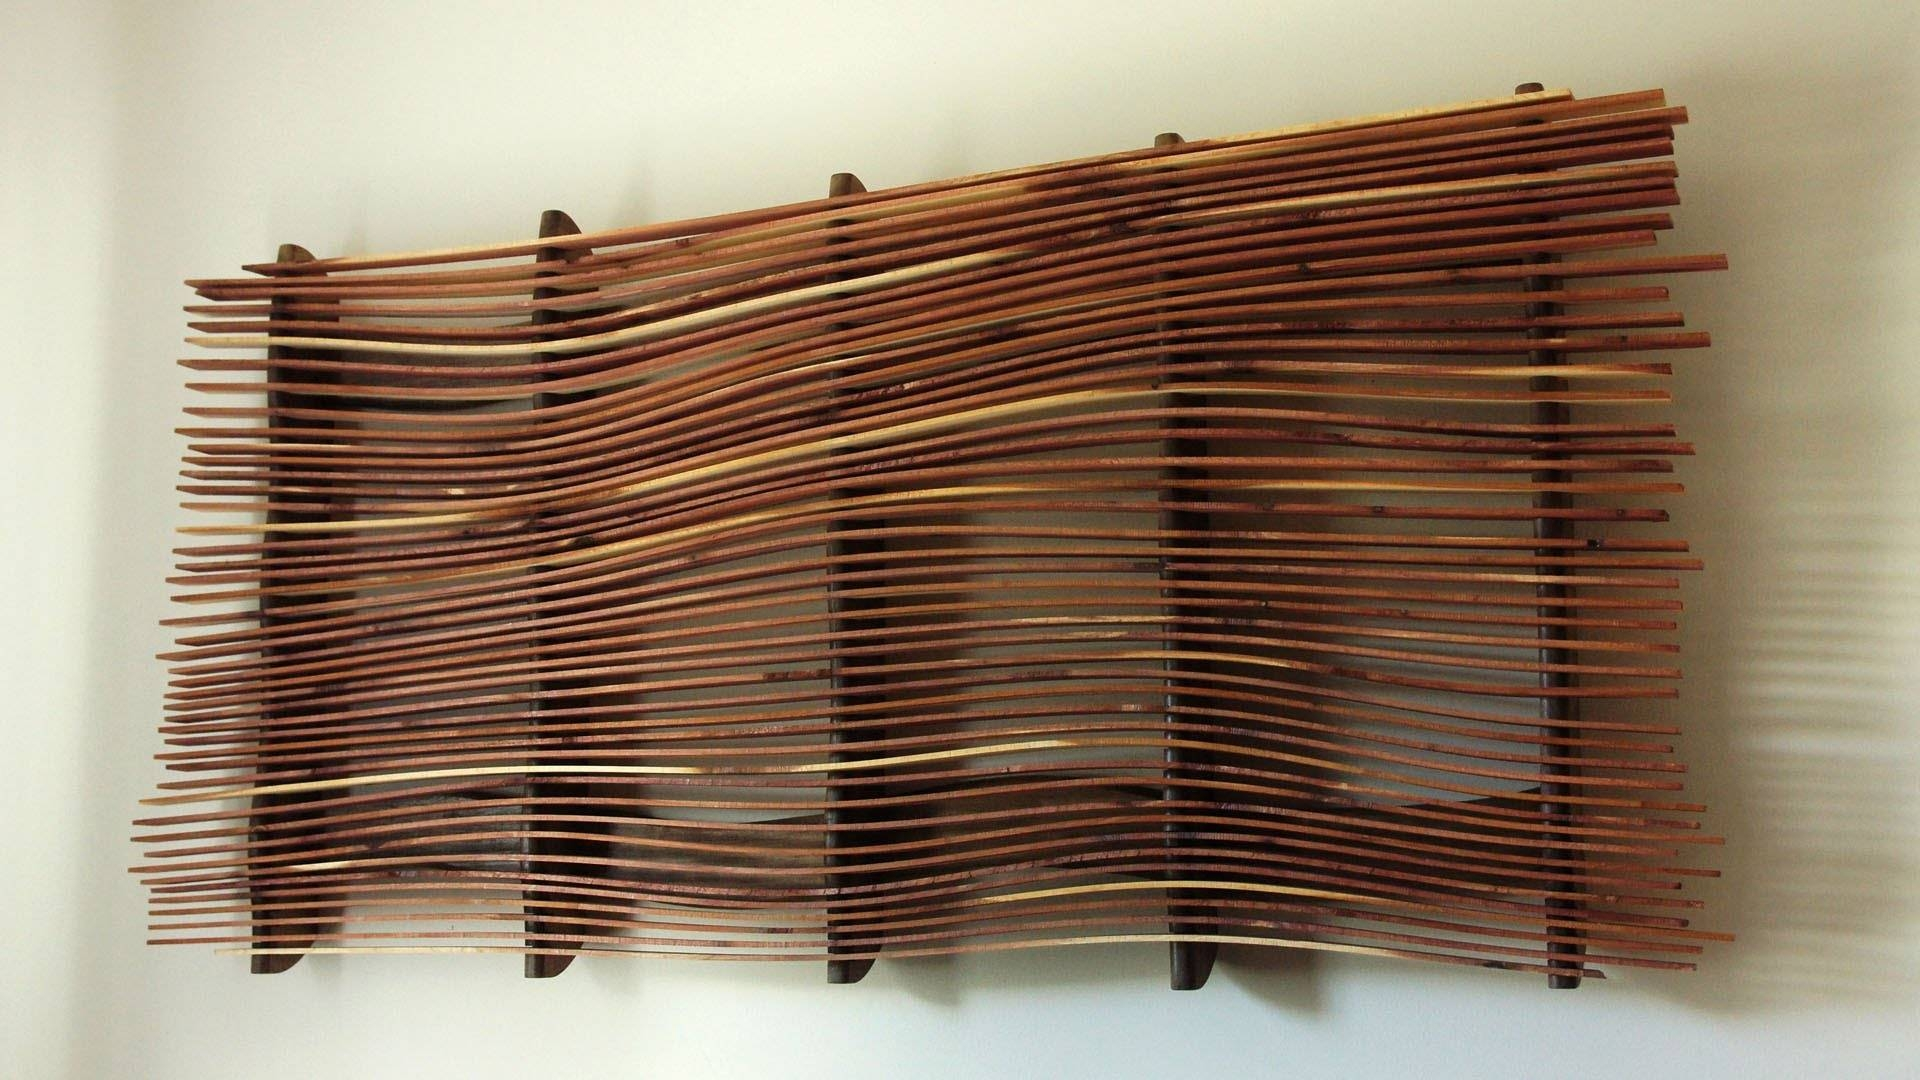 Wall Art From Scrap Wood – Youtube Intended For Most Current Wood 3D Wall Art (View 15 of 20)